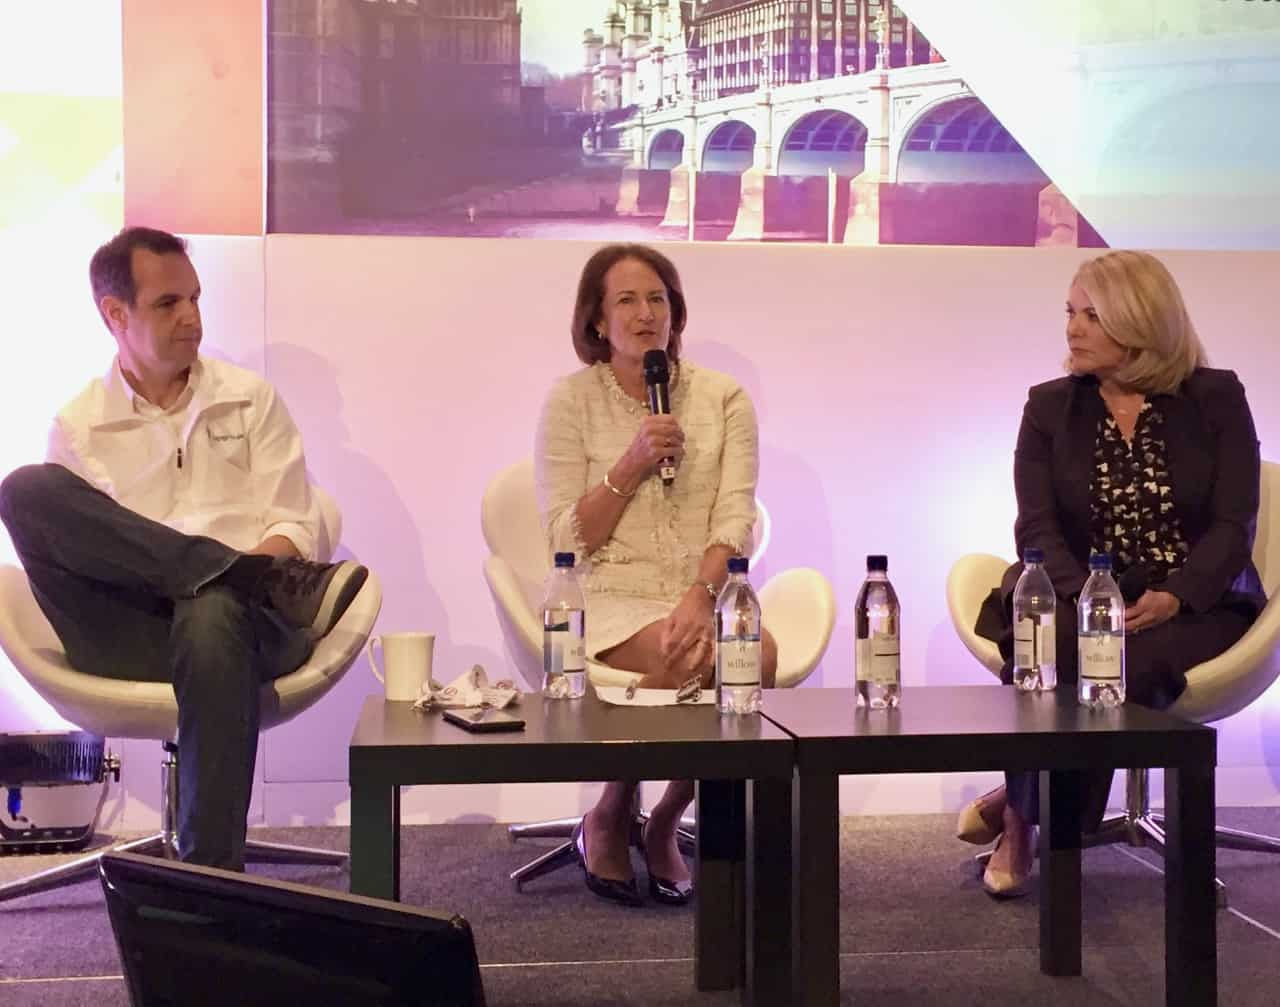 Karen Mills: Predictions for the Future of Small Business Lending and Fintech